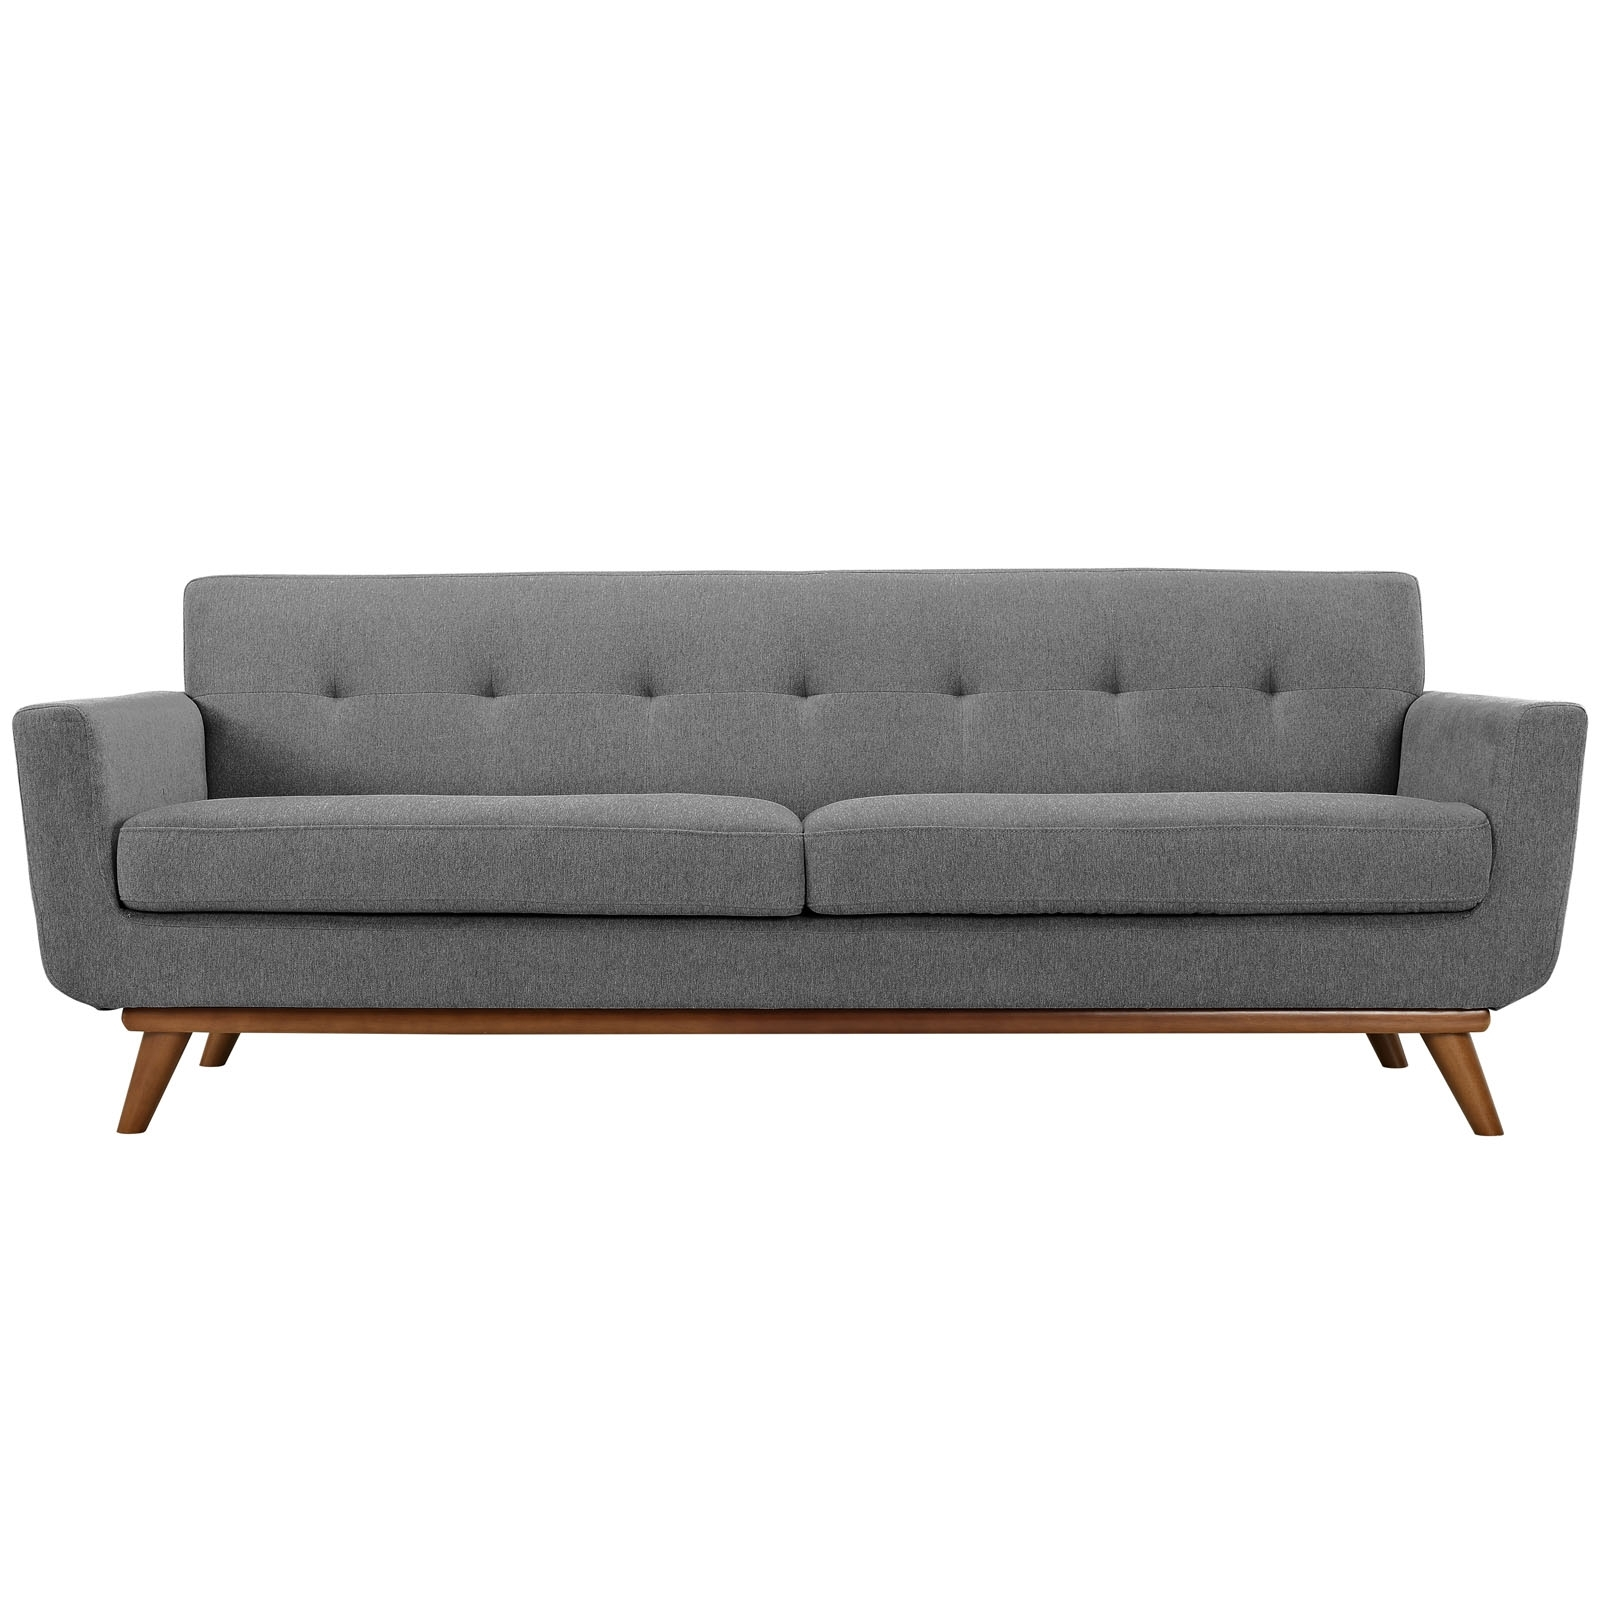 Widely Used Lancaster Pa Sectional Sofas Regarding Sofas & Couches – Walmart (View 17 of 20)